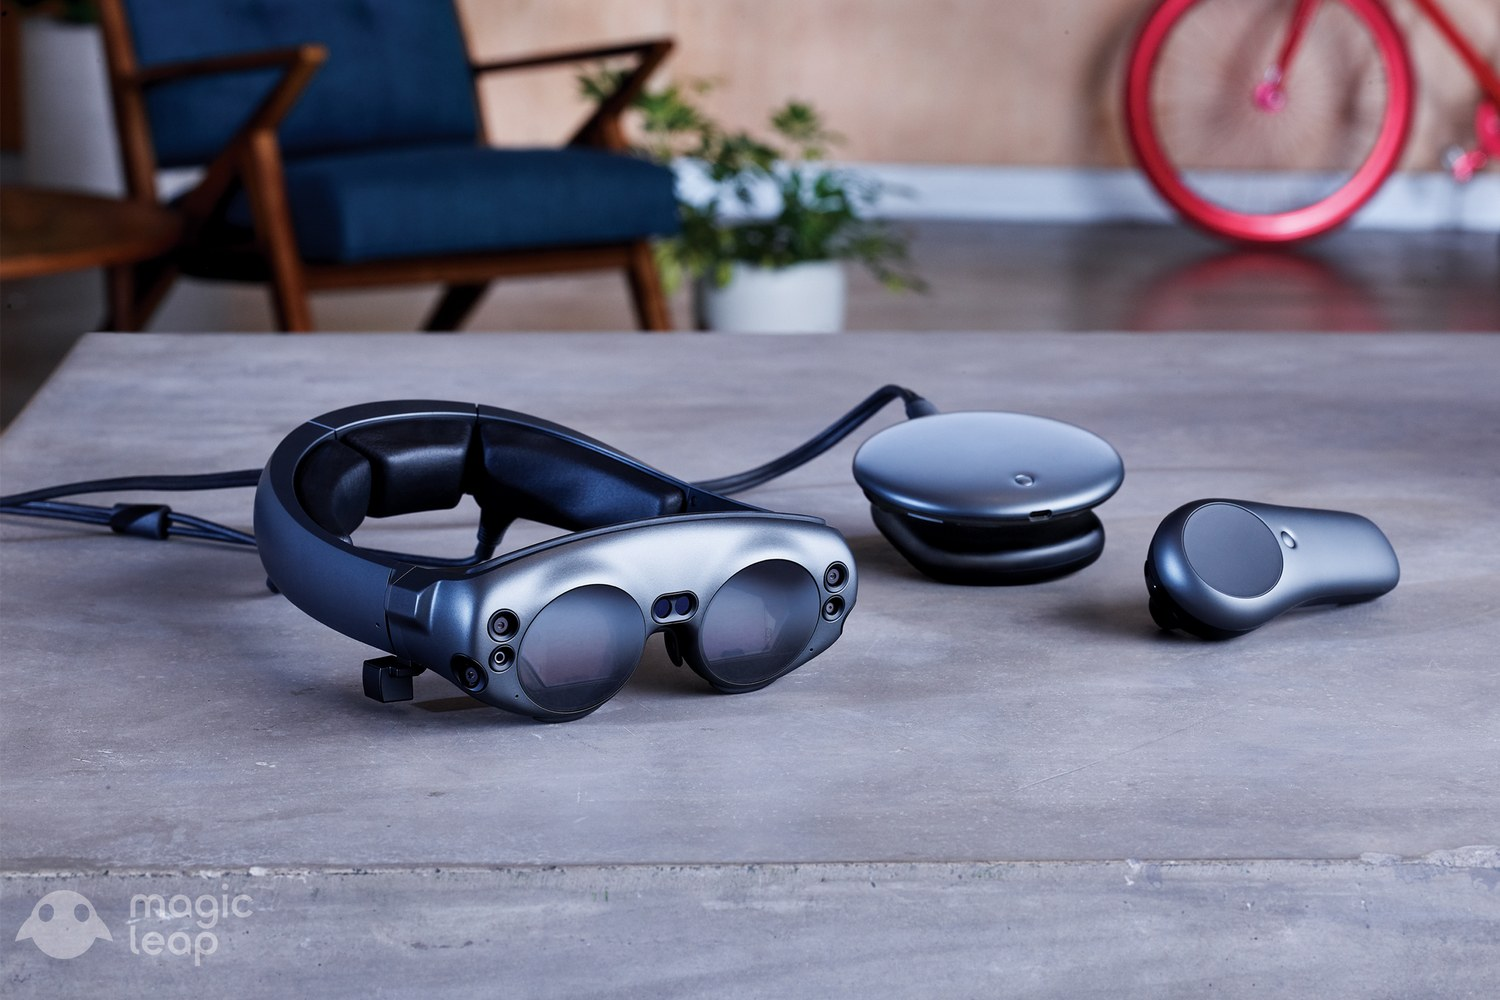 Magic Leap Reveals Mixed Reality Headset